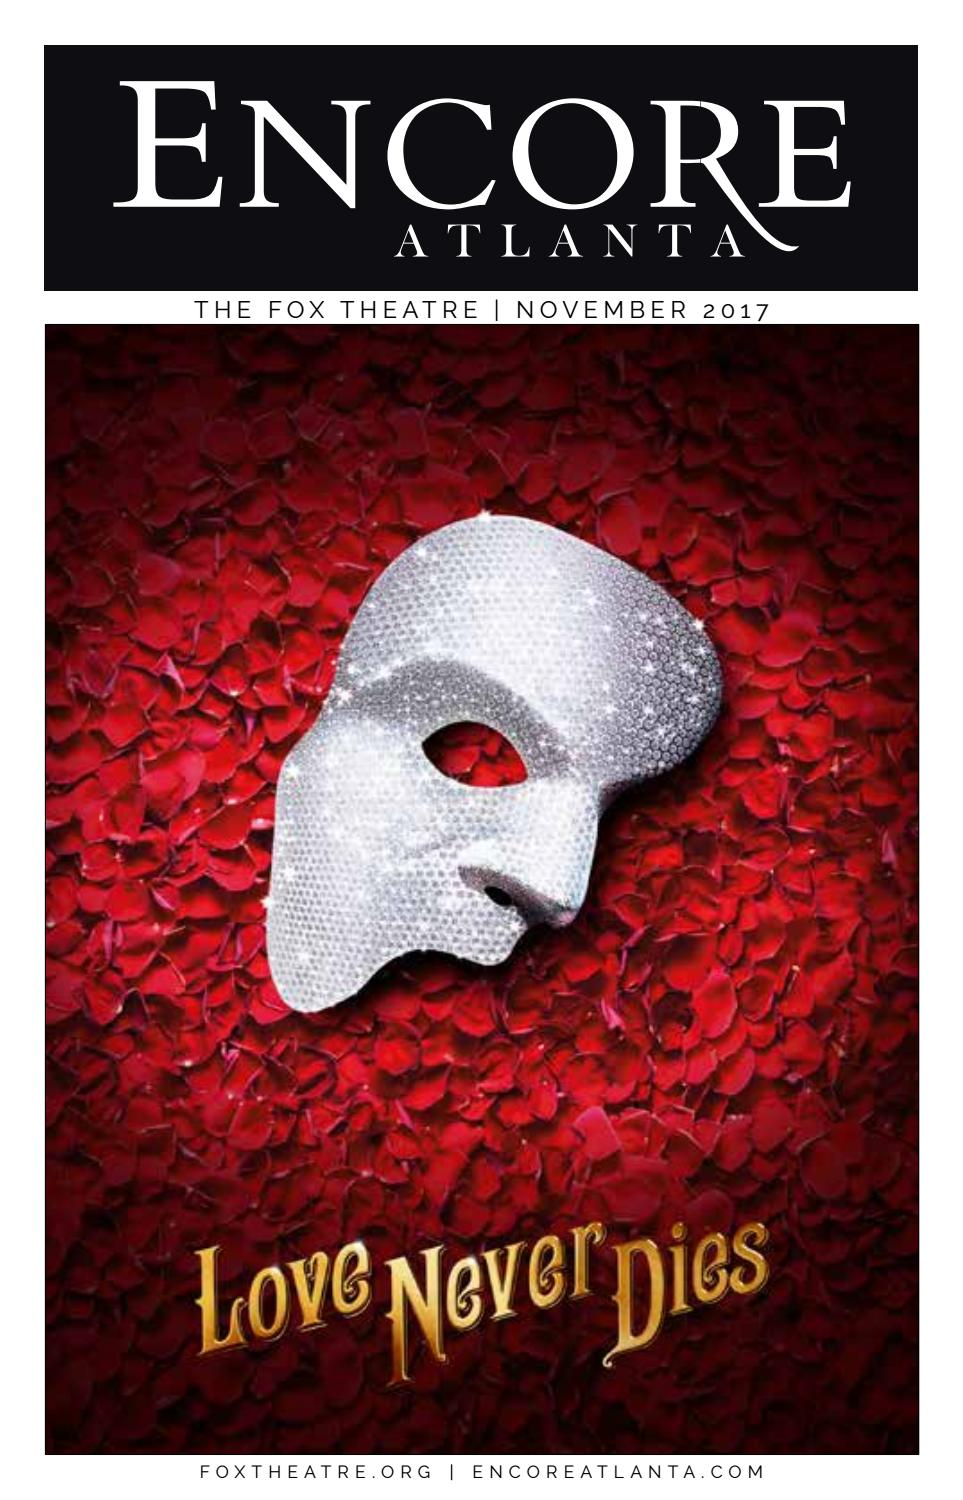 Phantom of the Opera Show LONDON Theatre West End.8 Page Promo Leaflet NEW Raoul